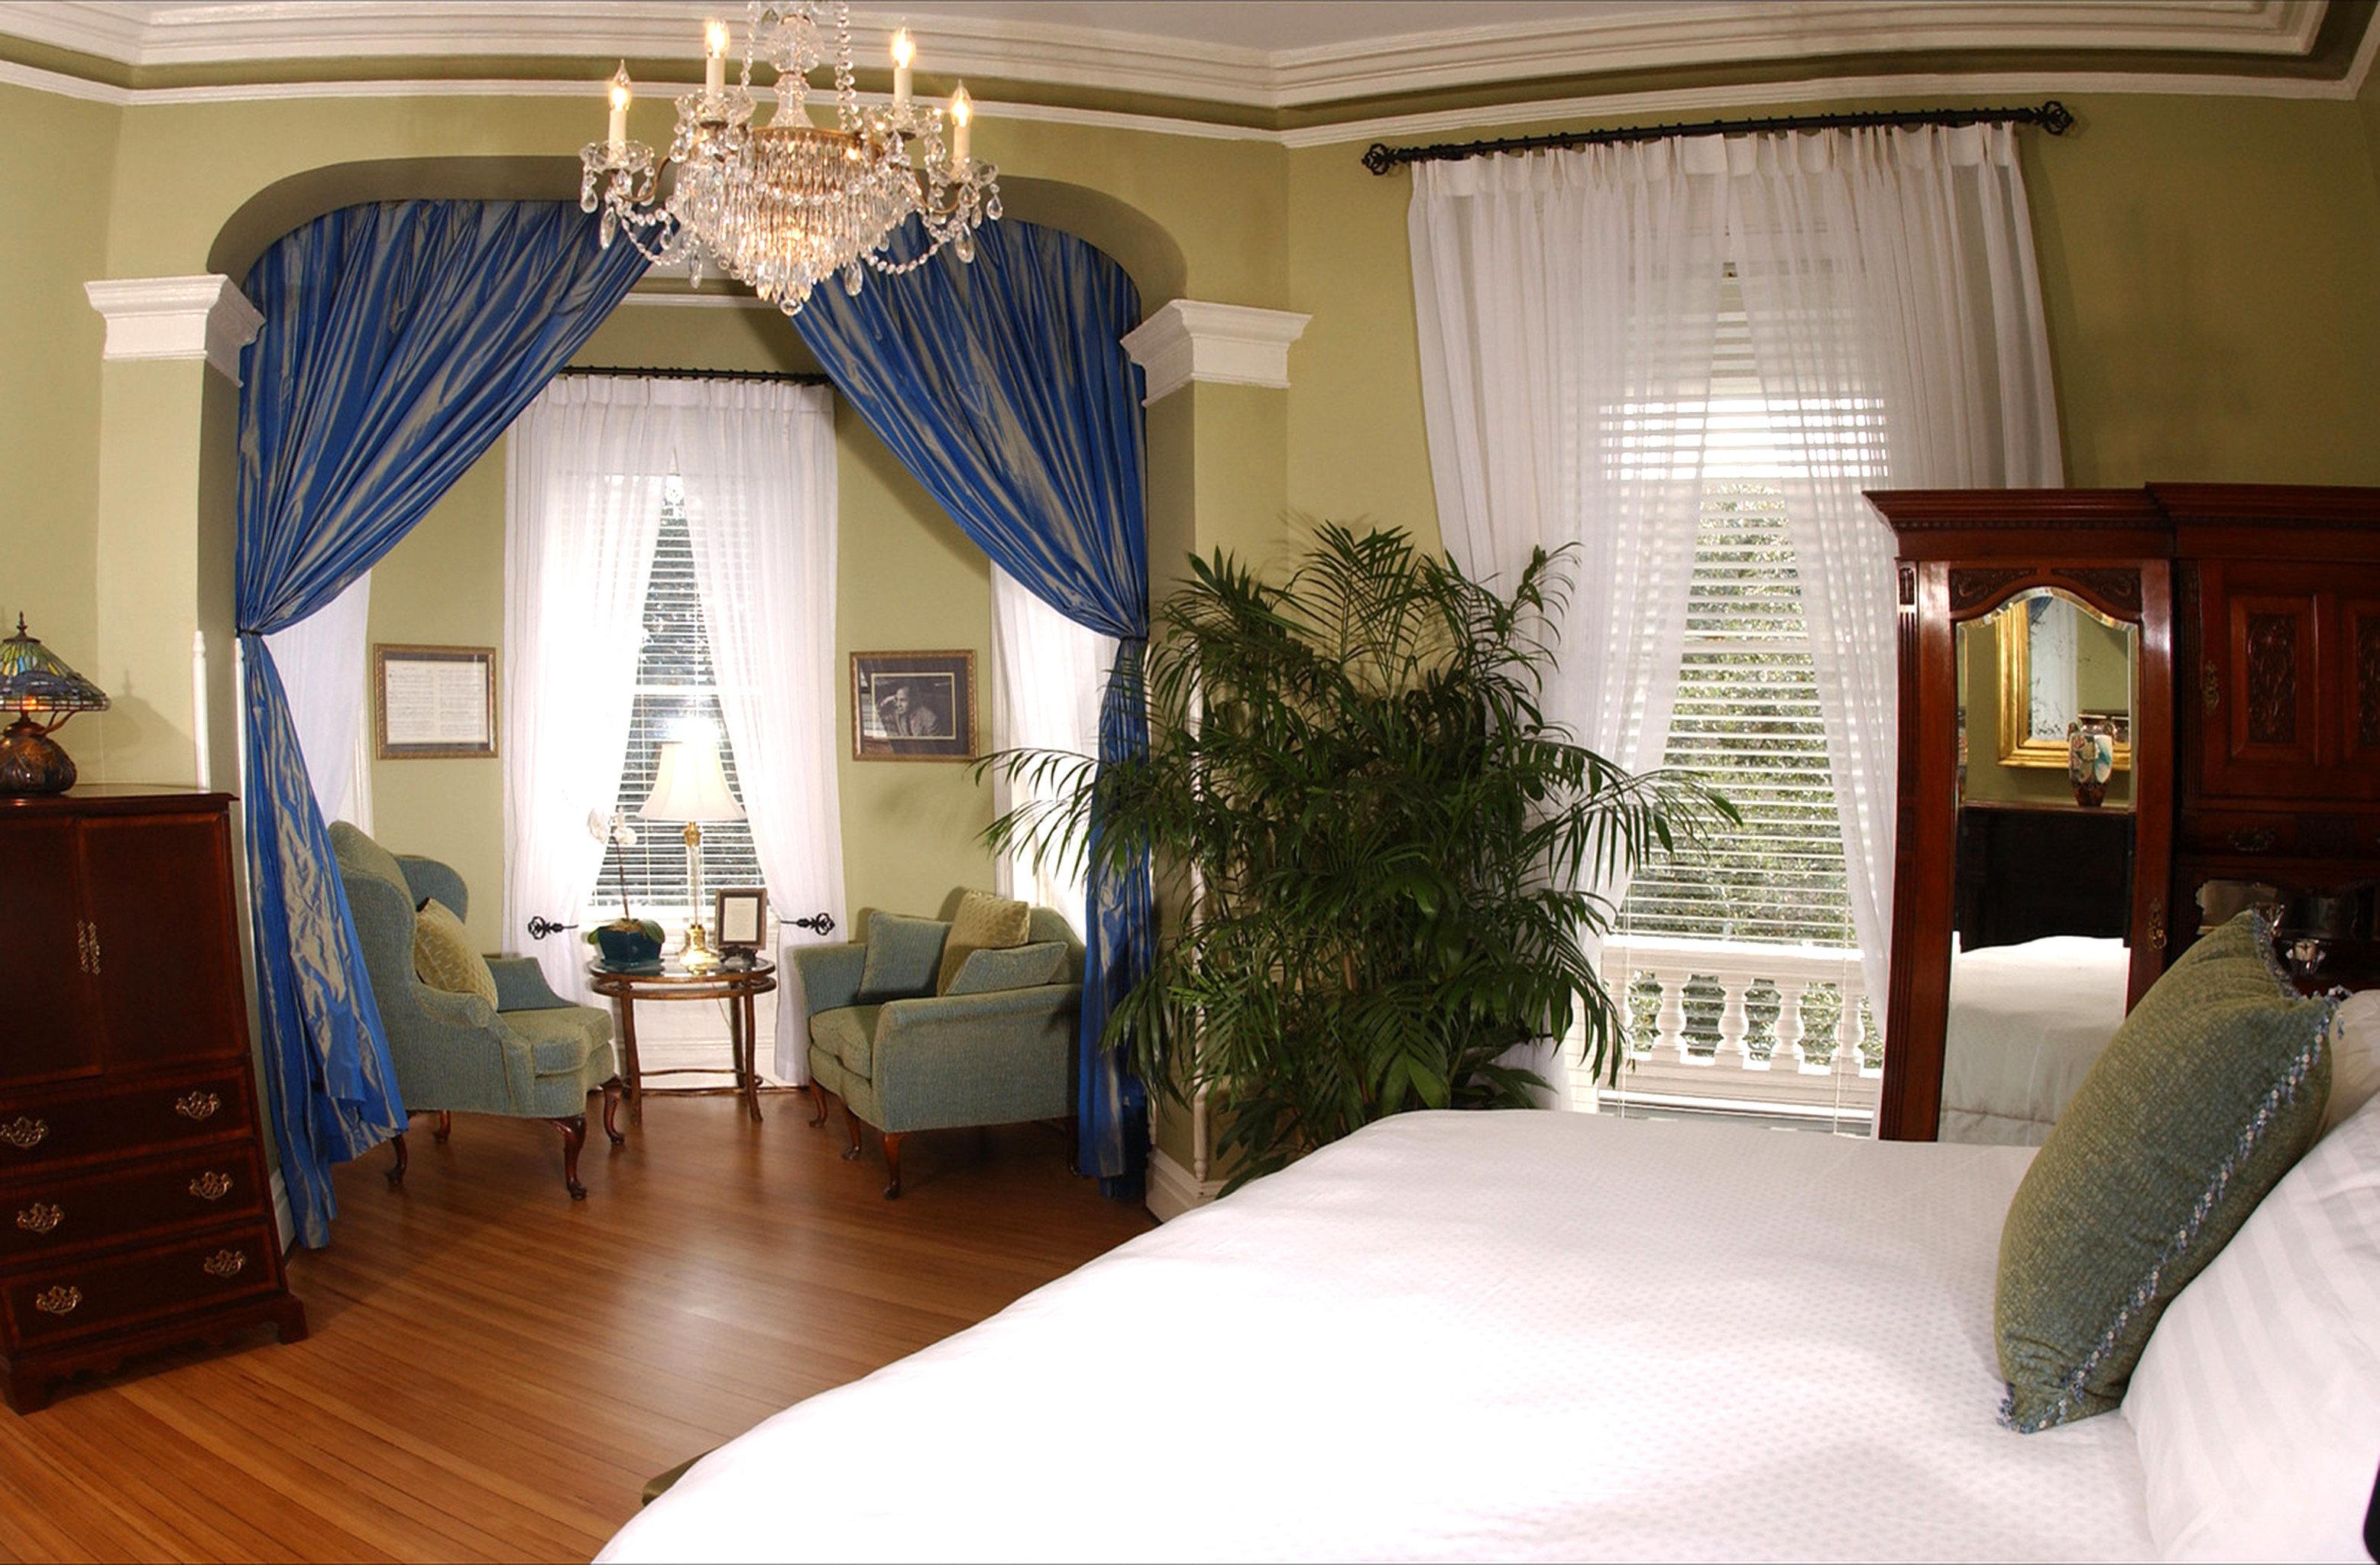 Bedroom Historic Lounge Luxury Suite property house home living room cottage Villa curtain mansion